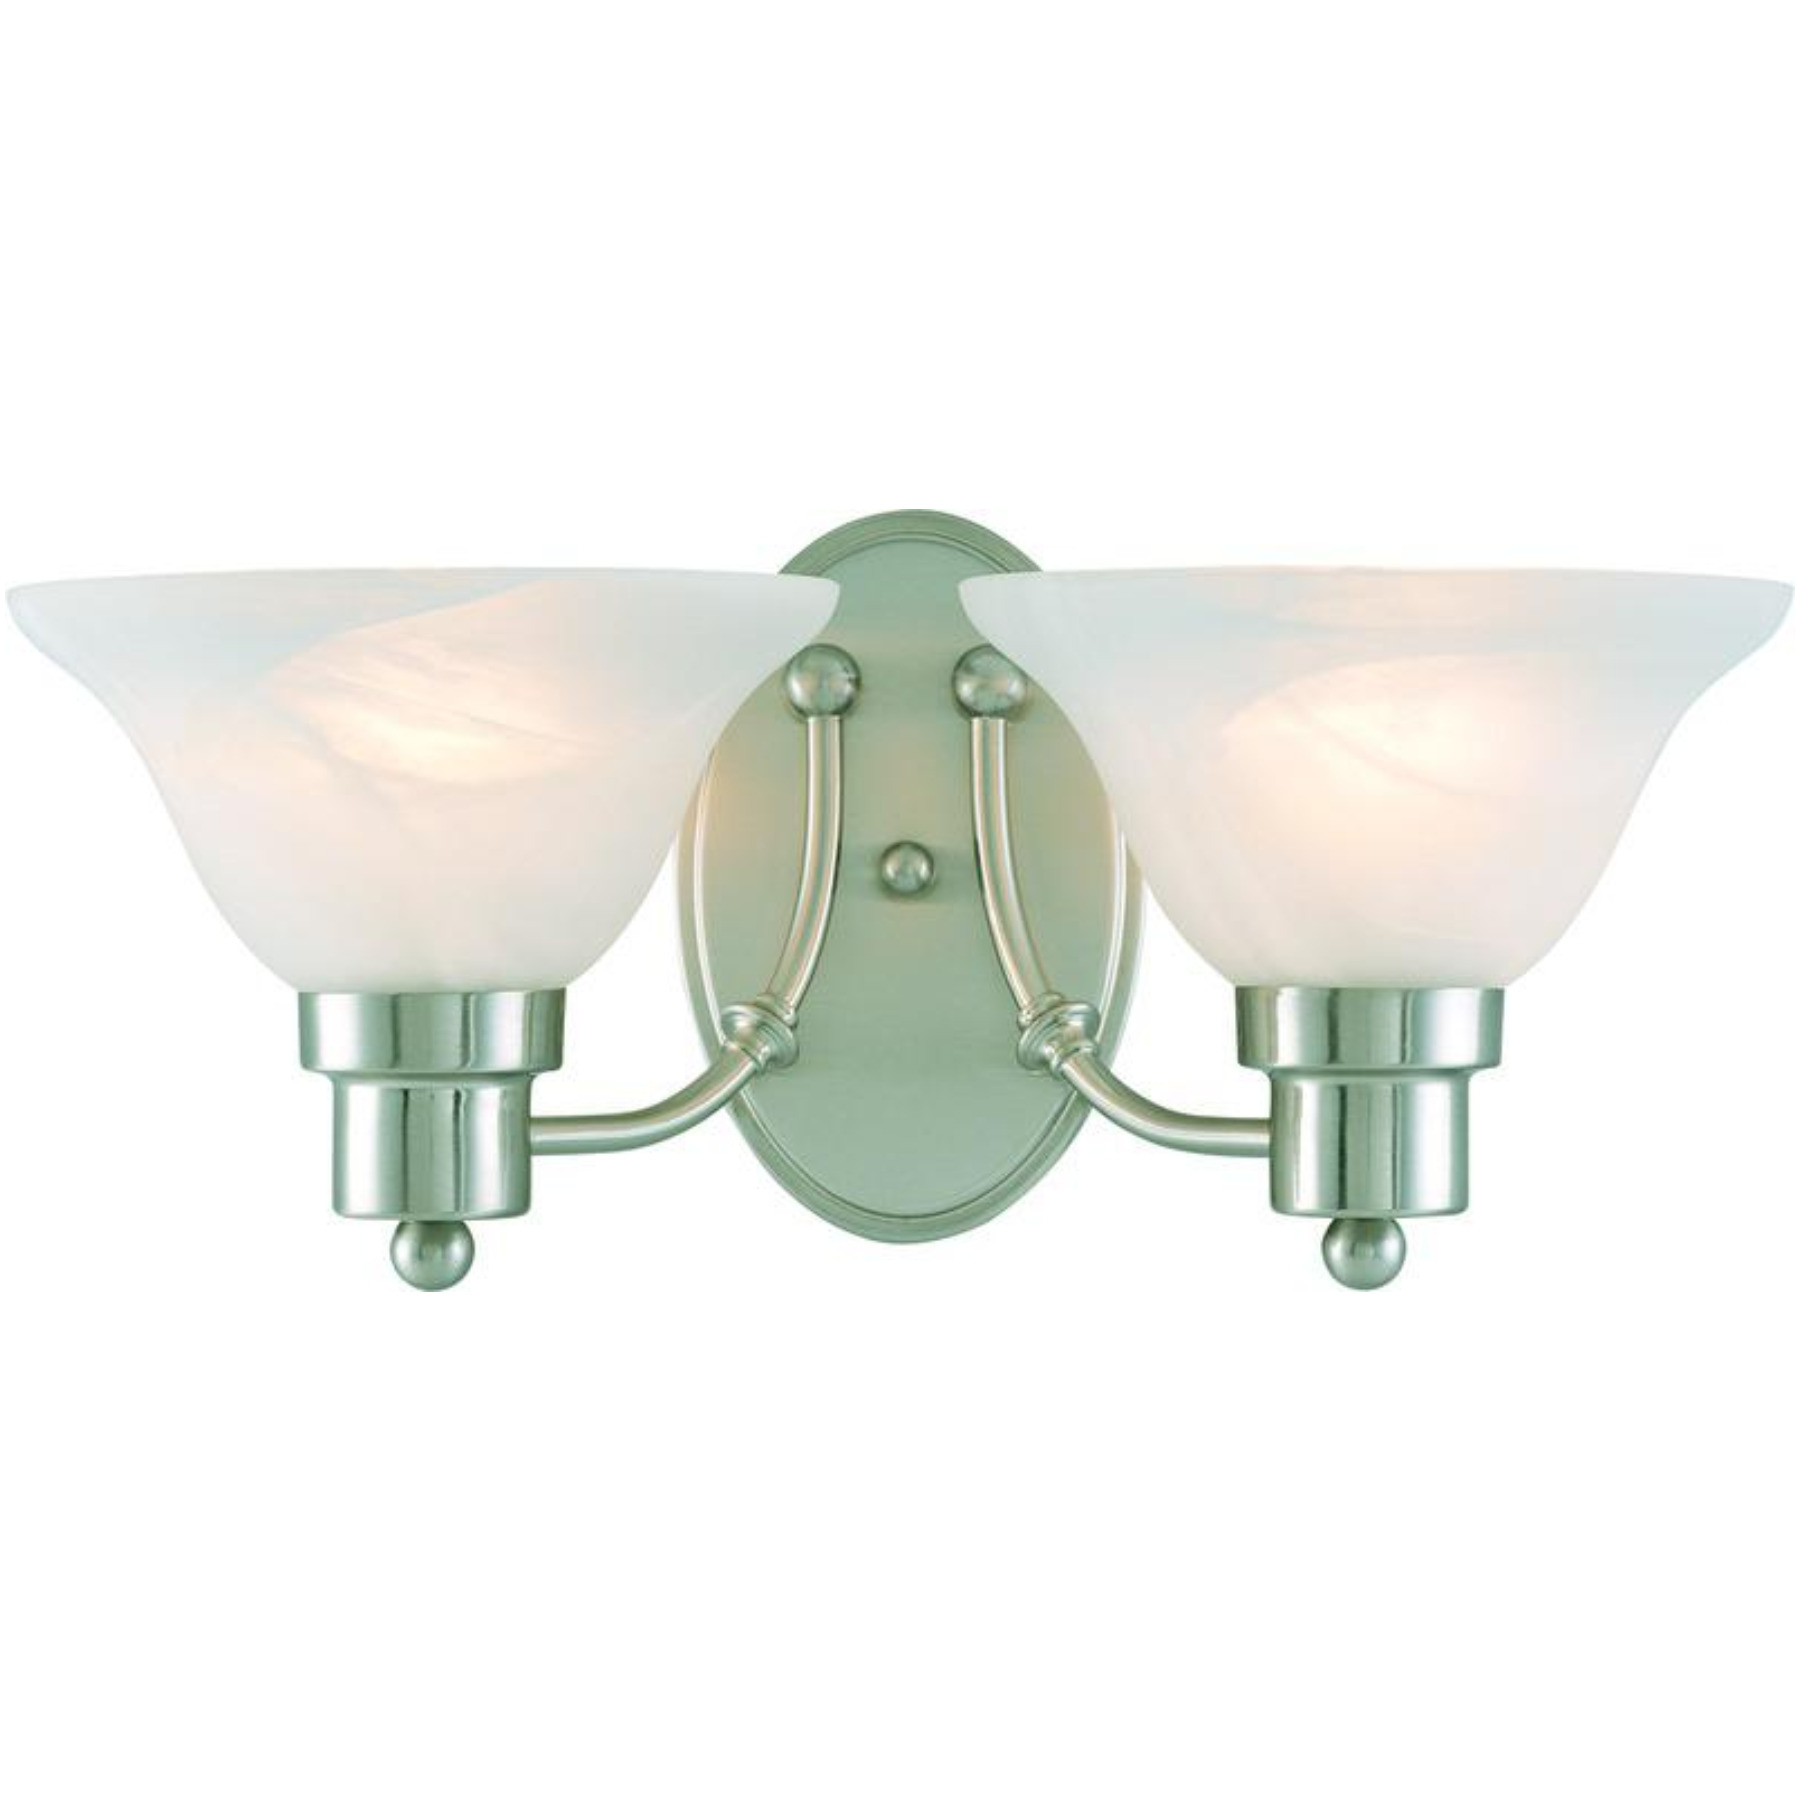 54-4478 Brushed Nickel White 2 Light Bristol